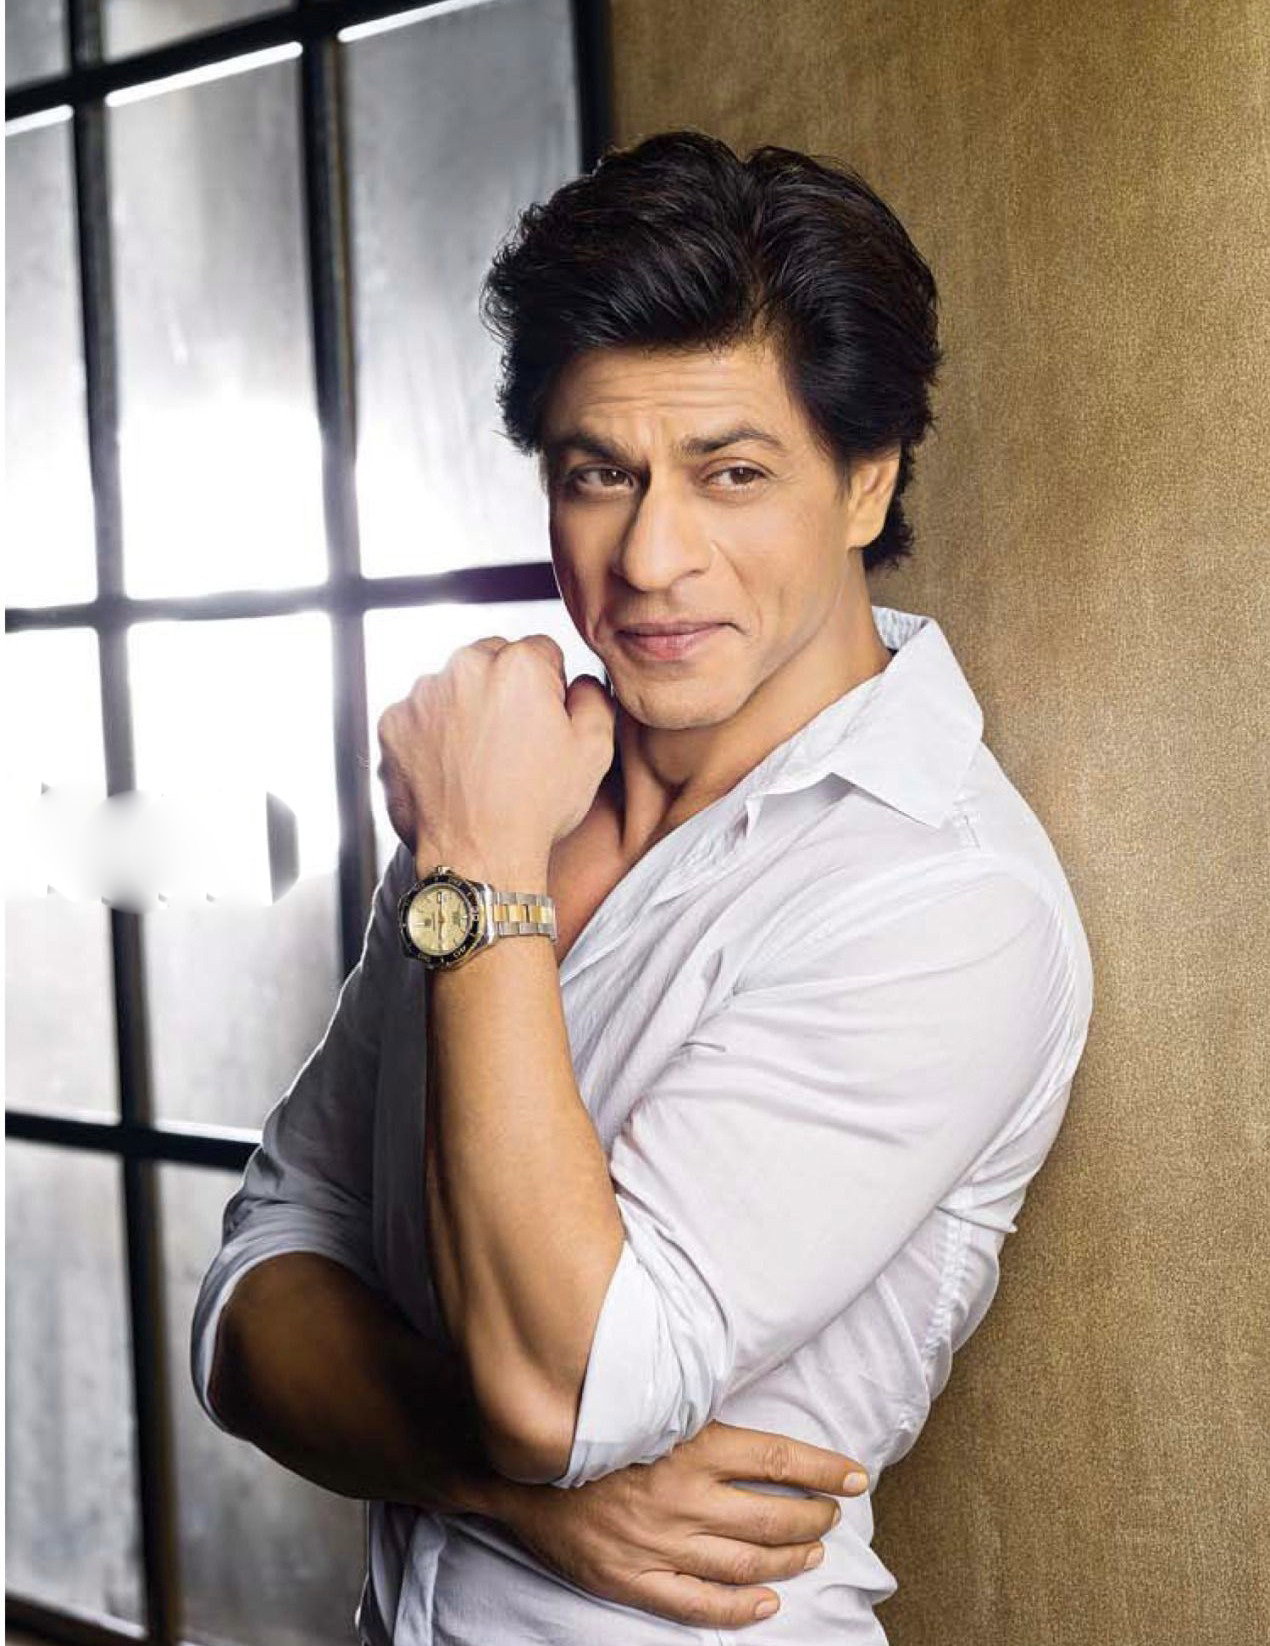 SHAHRUKH KHAN IMAGES  WALLPAPER PHOTO FREE HD